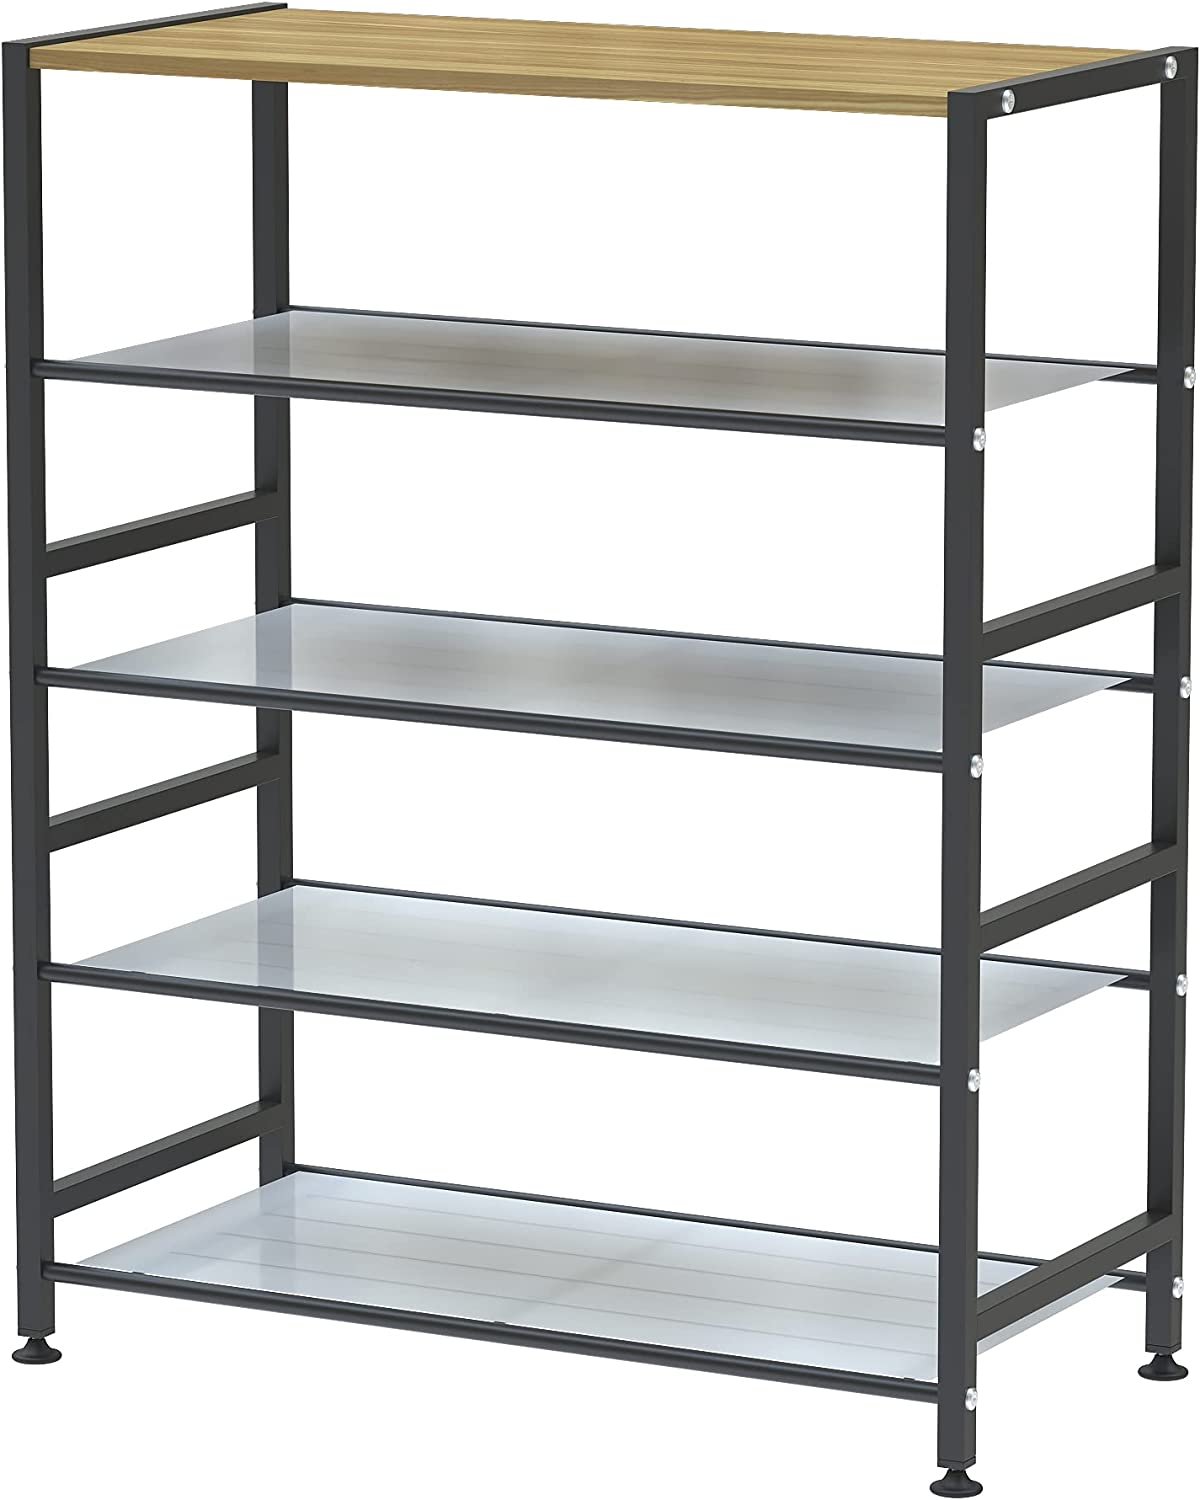 AHMED Shoe Rack 5-Tier Metal with Board MDF Purchase 4 and Sales Top